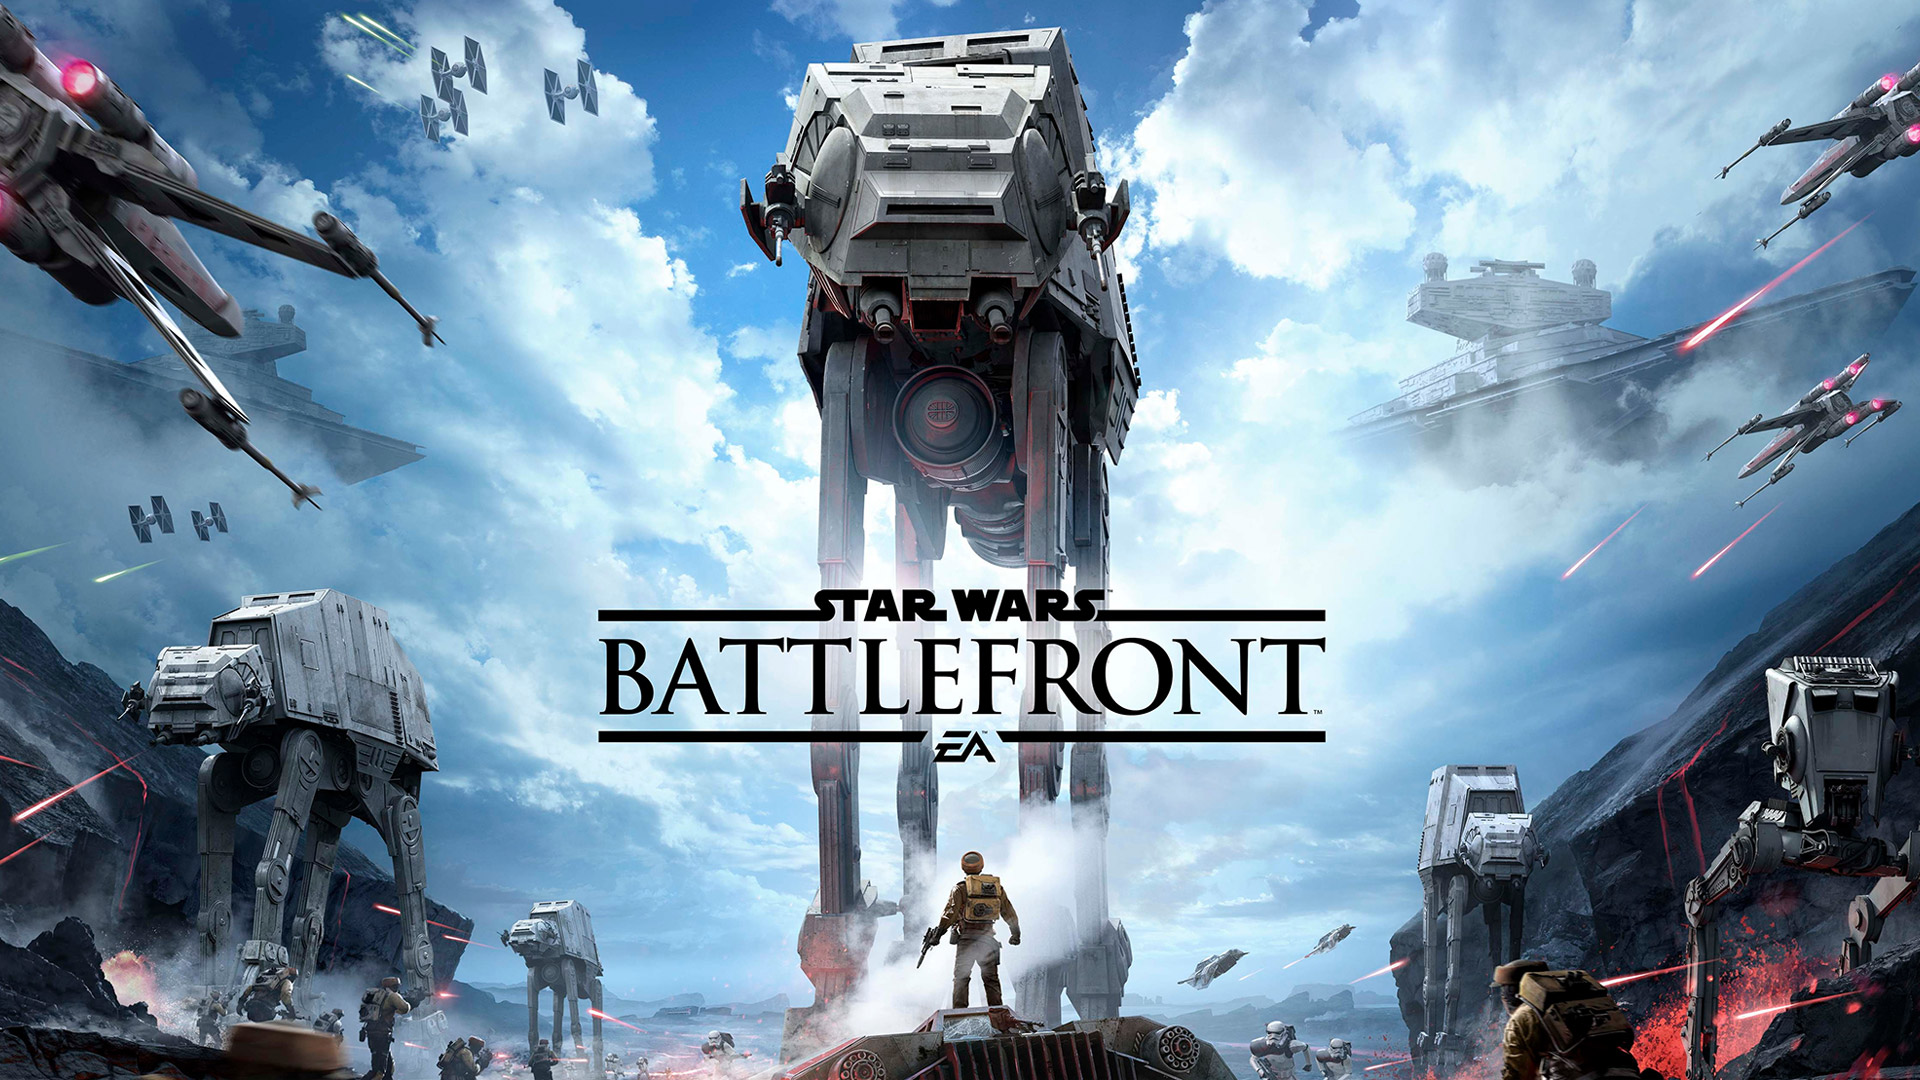 STAR WARS Battlefront w 2017 roku